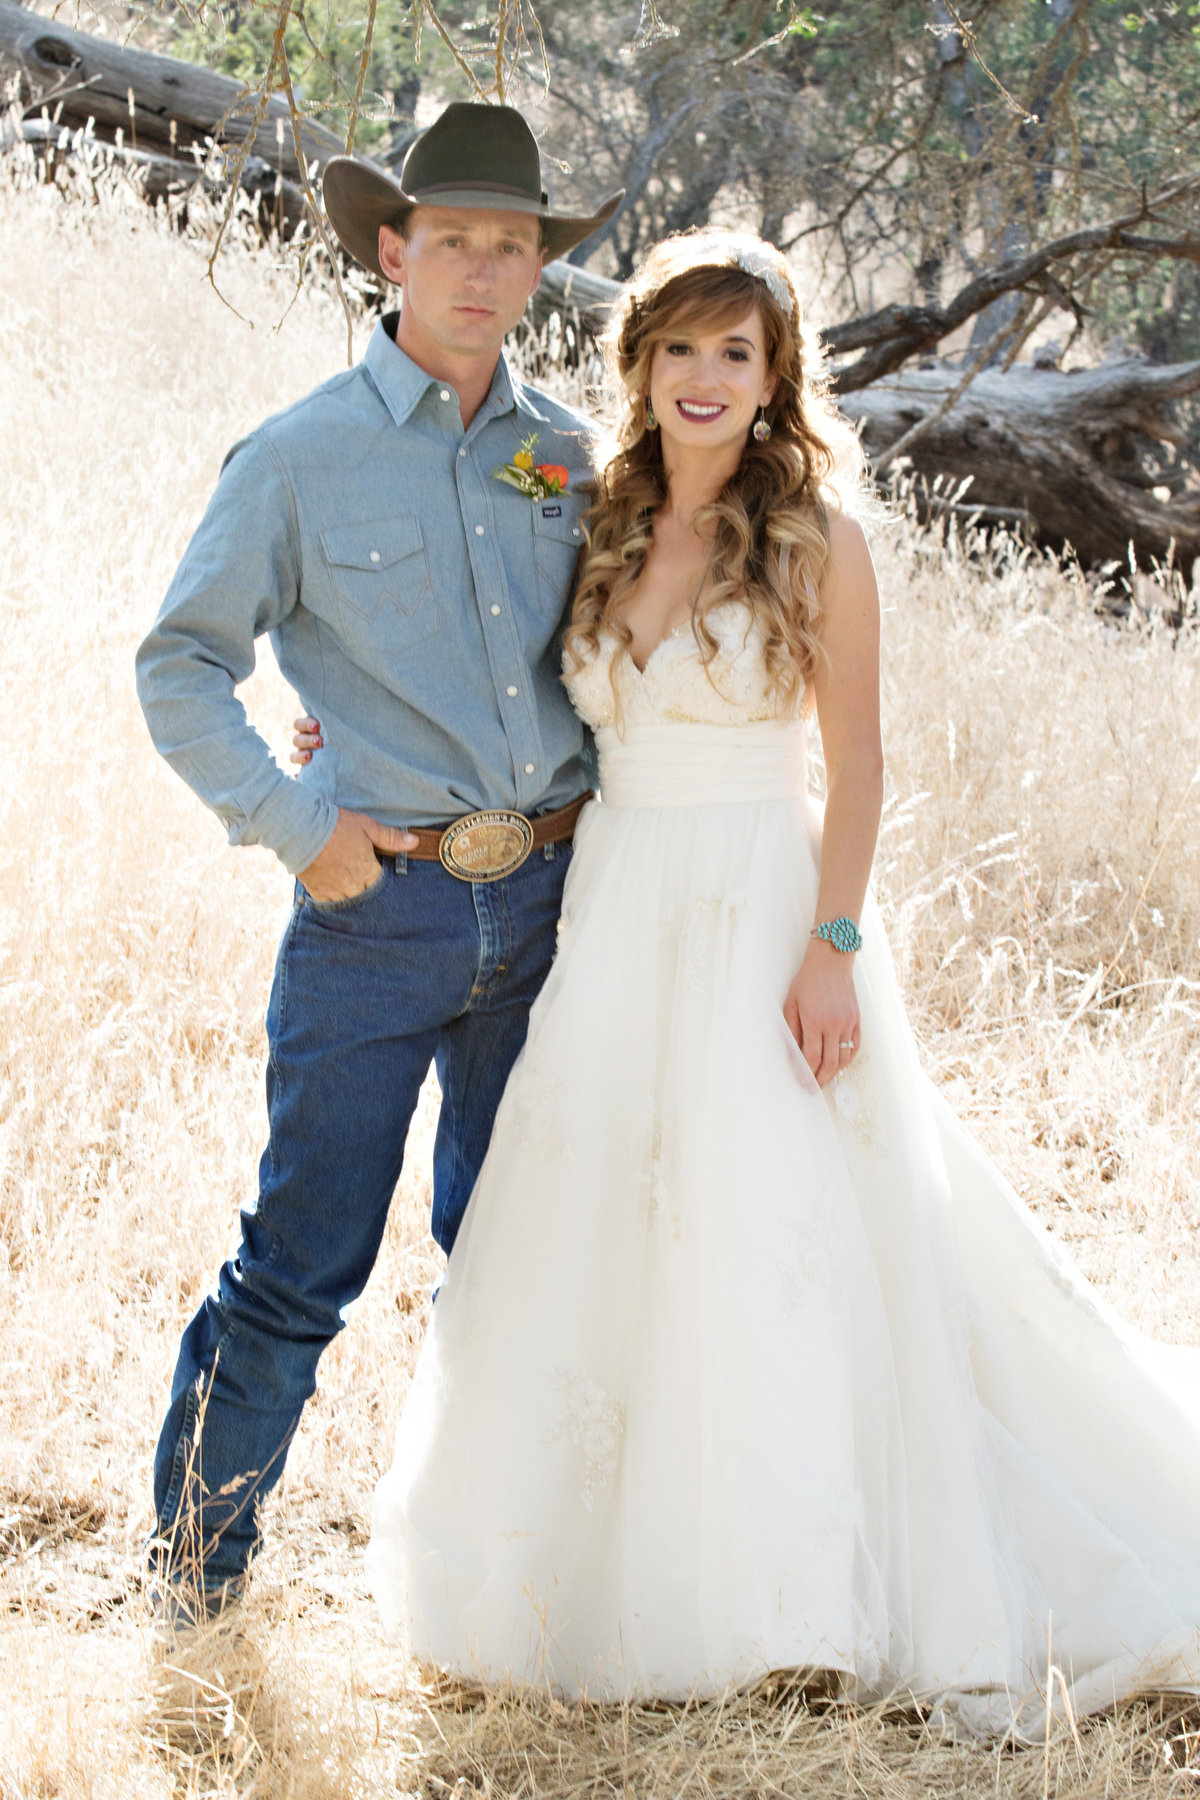 Cowboy bride and groom, country wedding